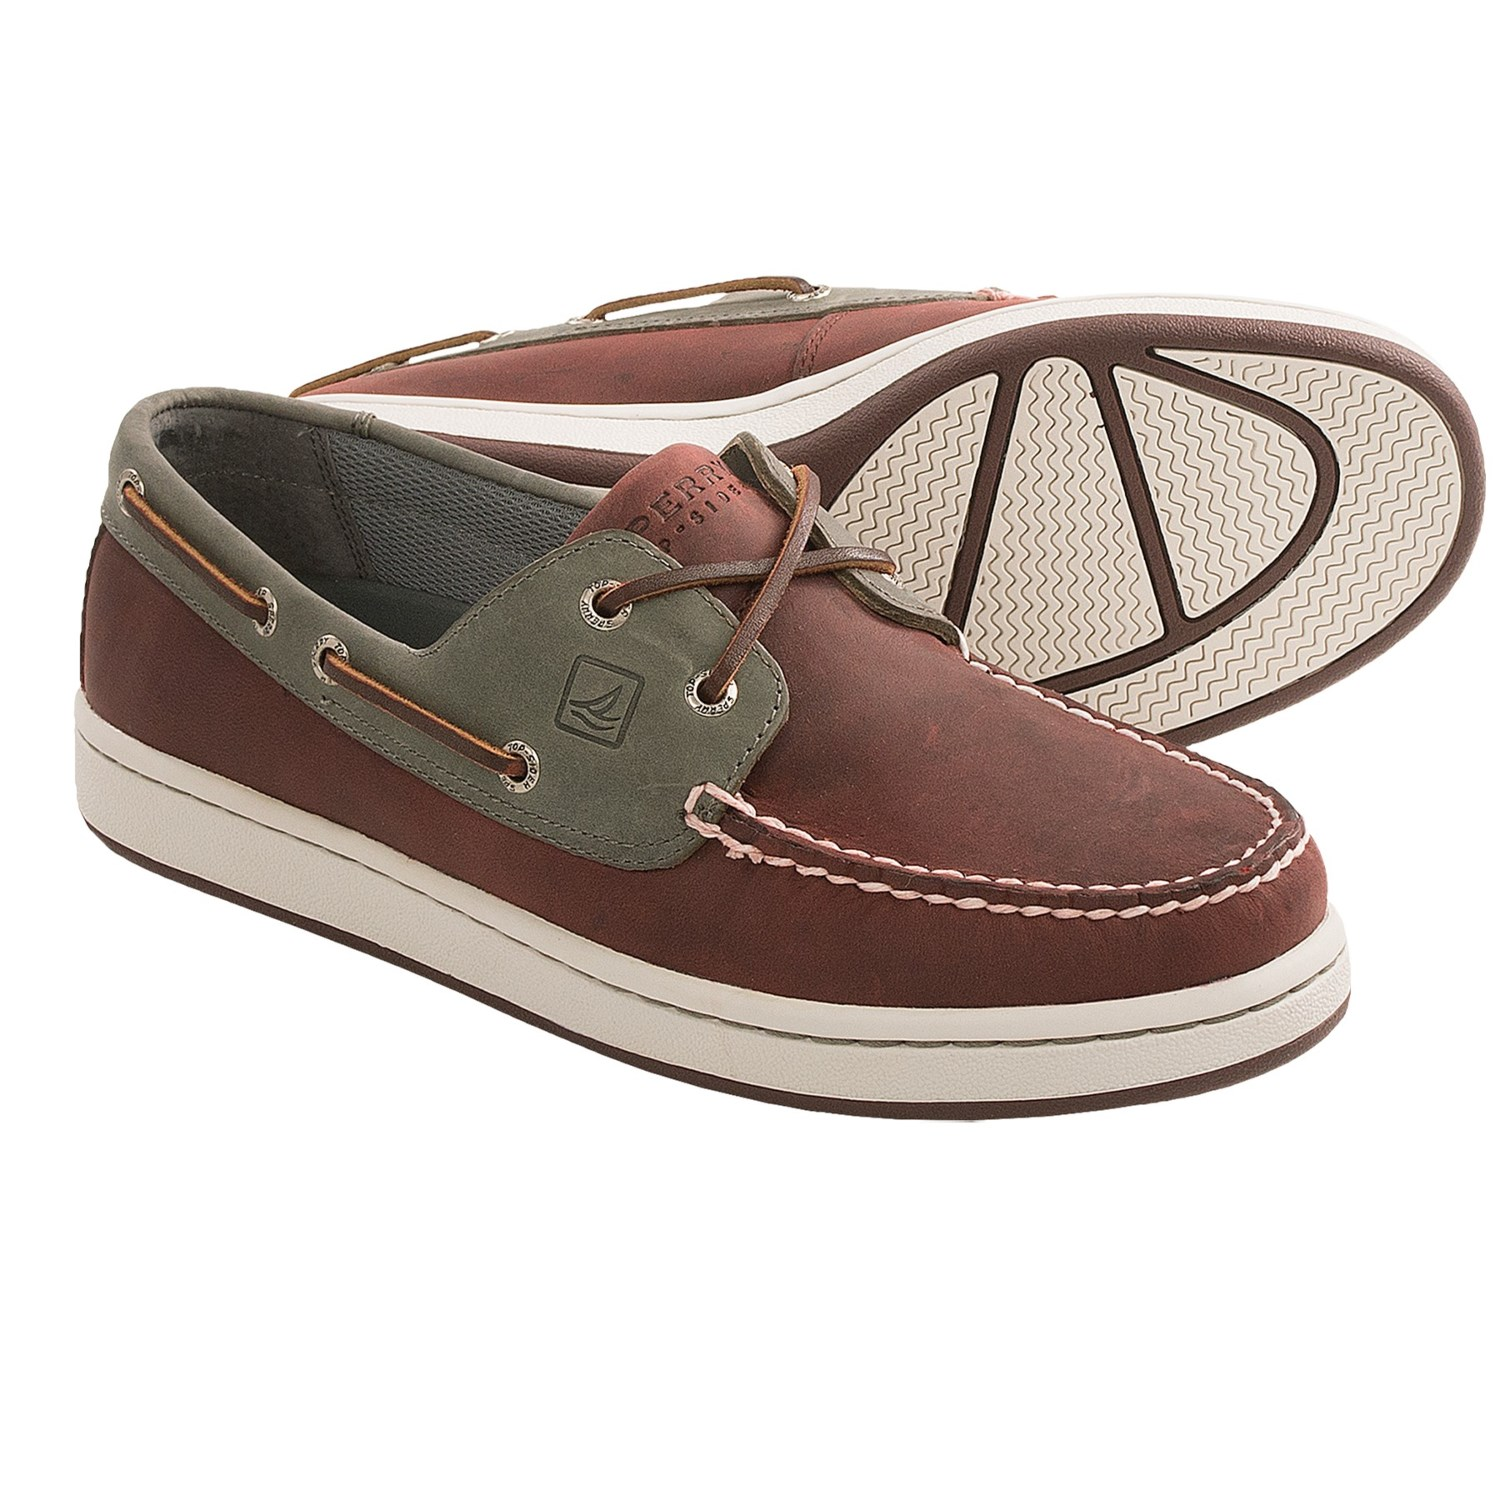 sperry top sider sperry cup 2 eye boat shoes for